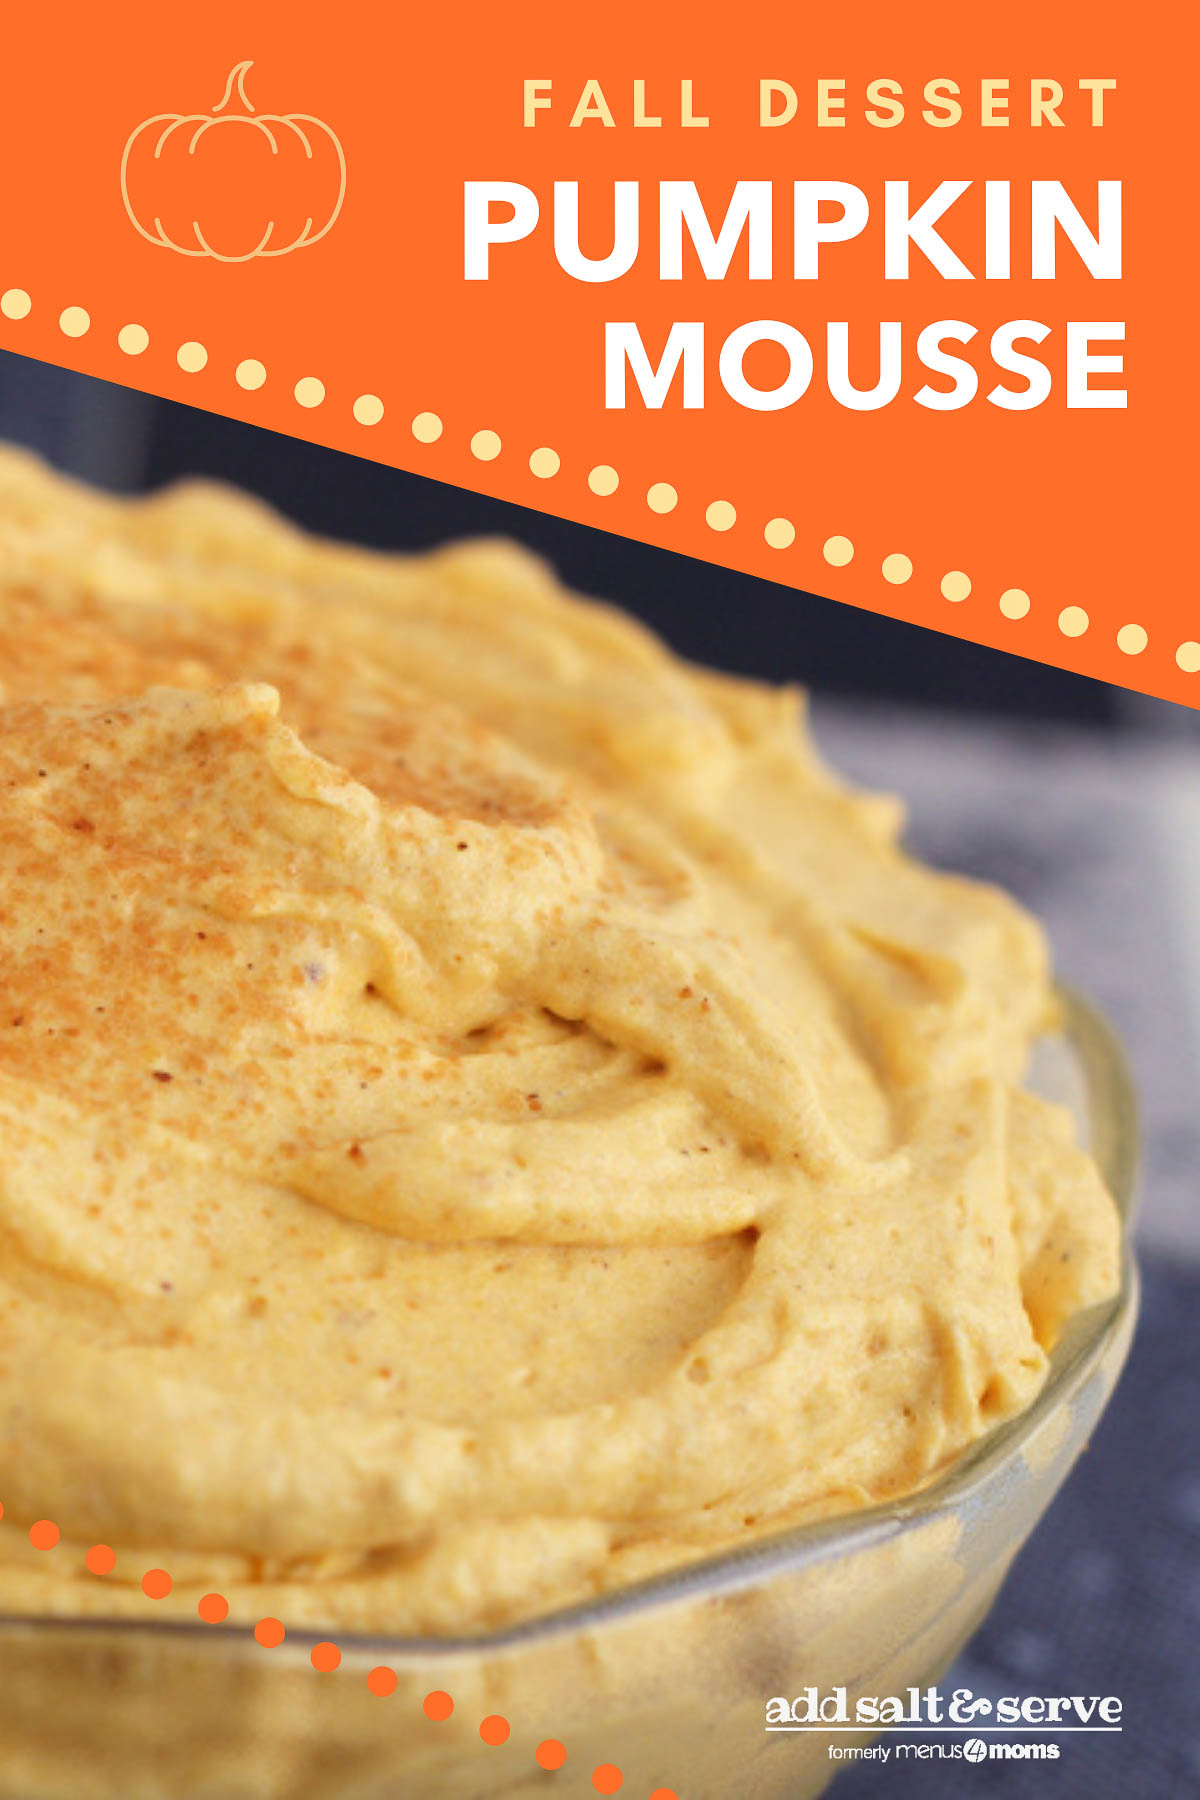 Pumpkin Mousse garnished with cinnamon